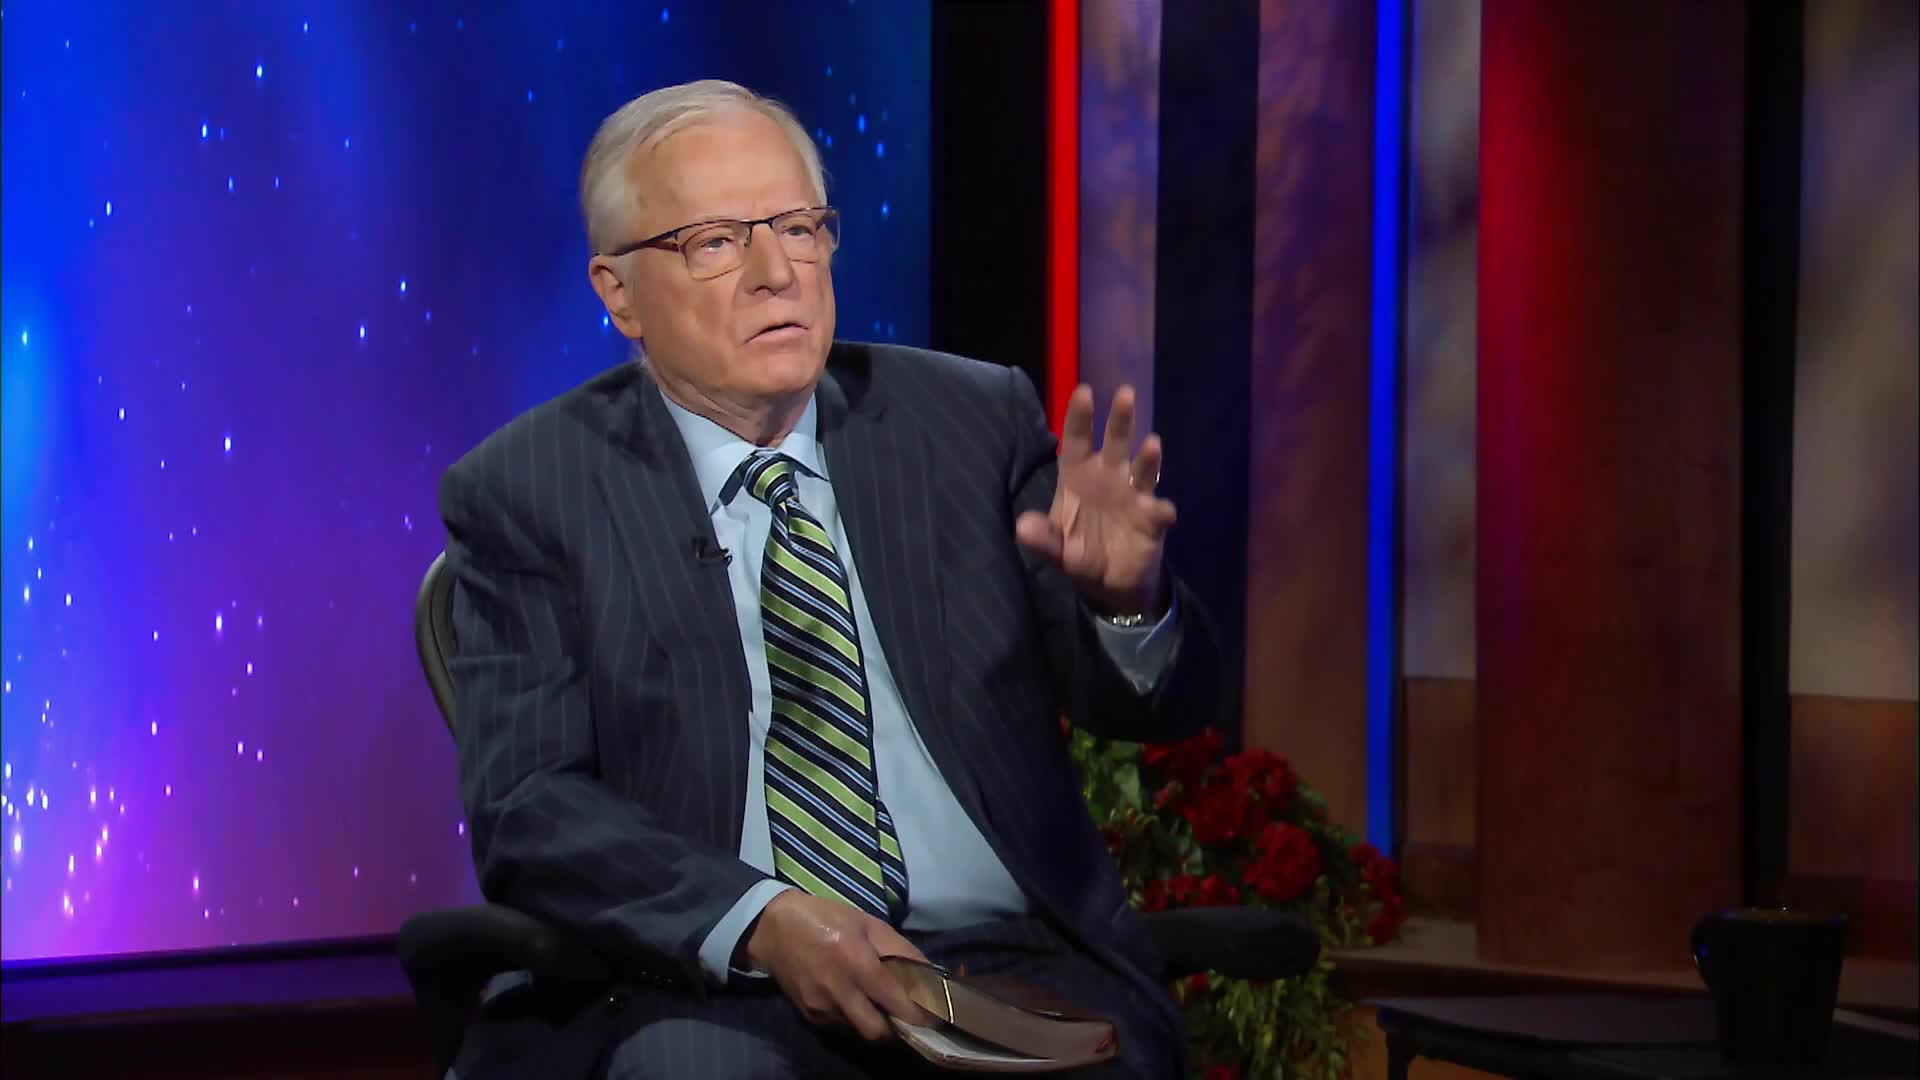 How You Can Be Sure You Will Spend Eternity With God – Part 2 - Program 2